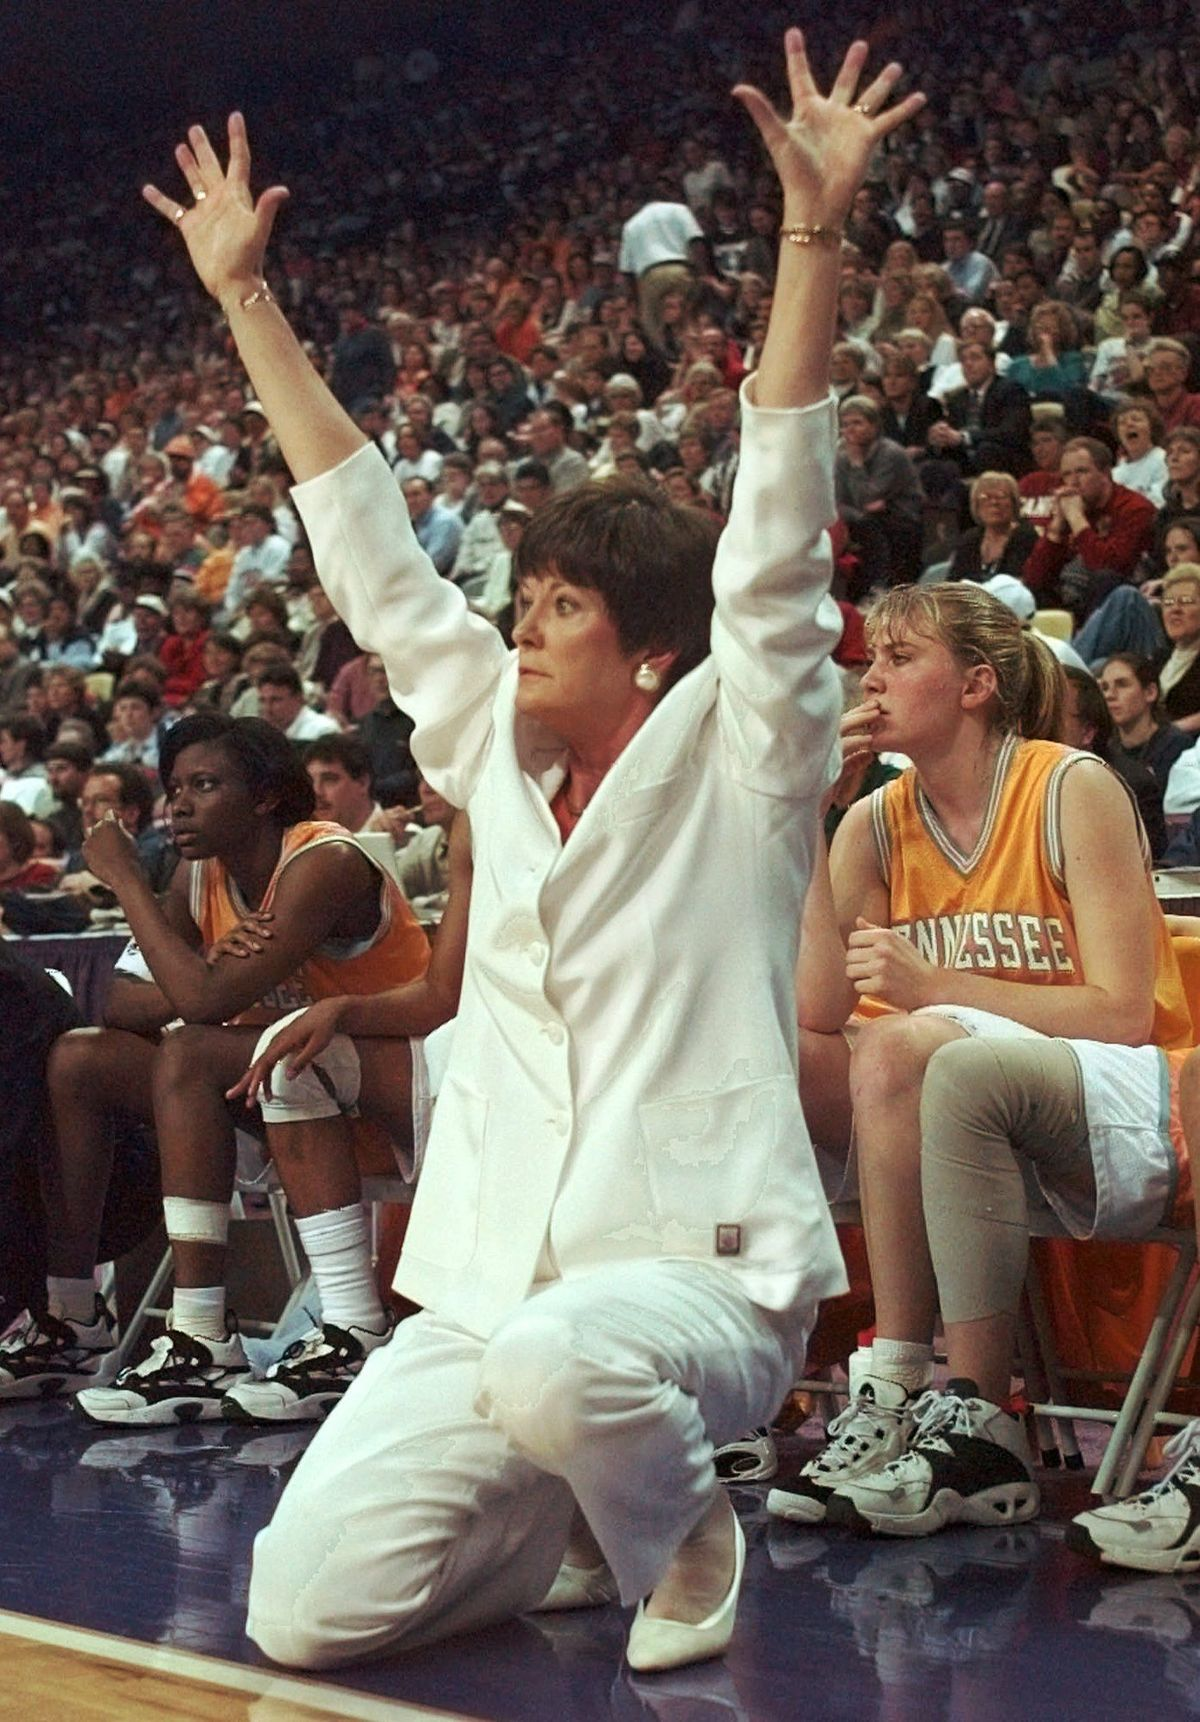 Tennessee Coach Pat Summitt S Storied Coaching Career In Photos Pat Summitt Lady Vols Basketball College Basketball Teams